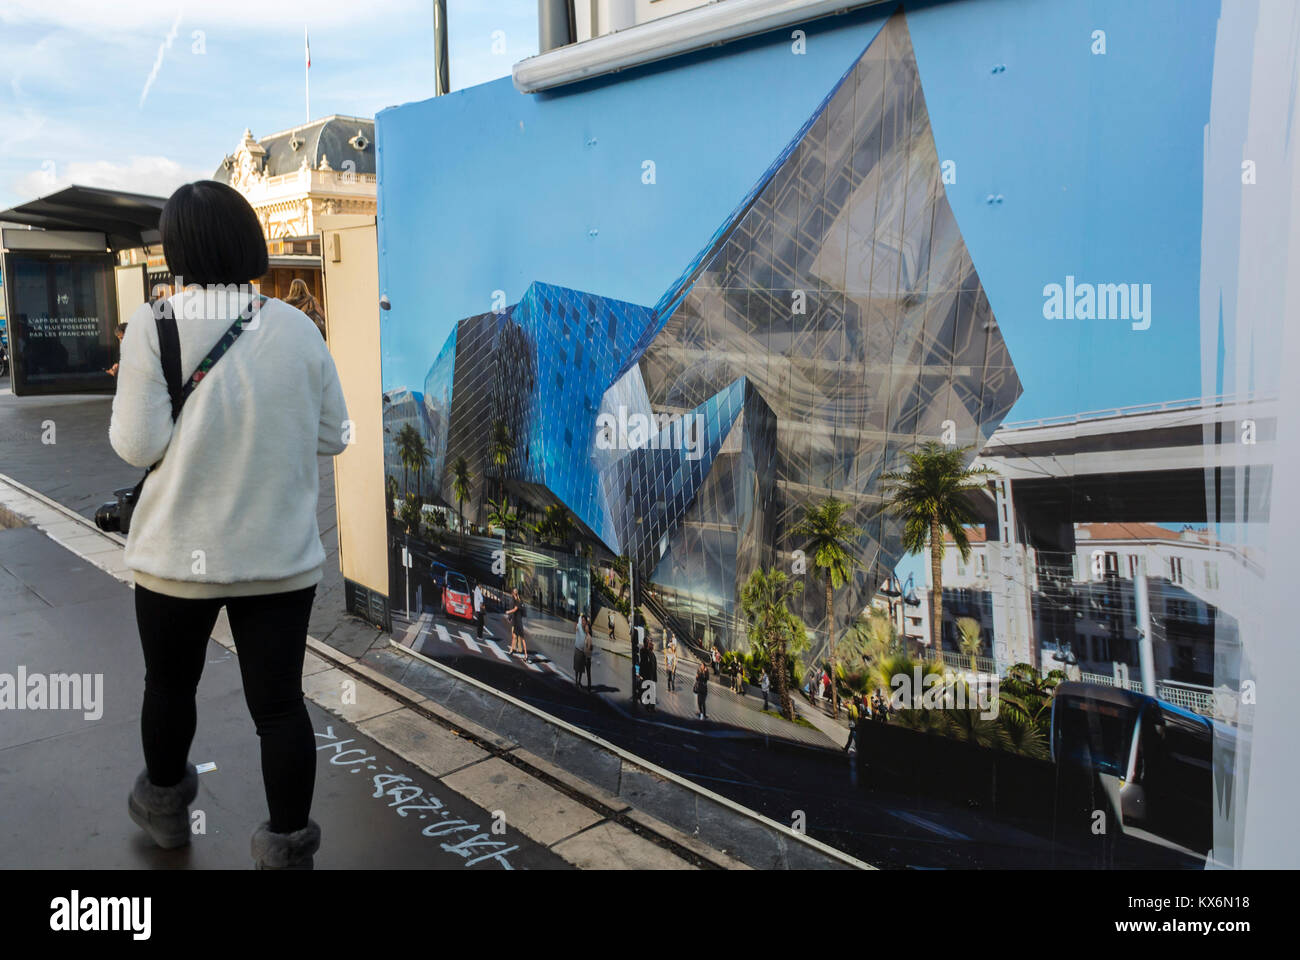 Nice, France, Woman Walking Away, New Building Construction Poster on Street near Train Station - Stock Image